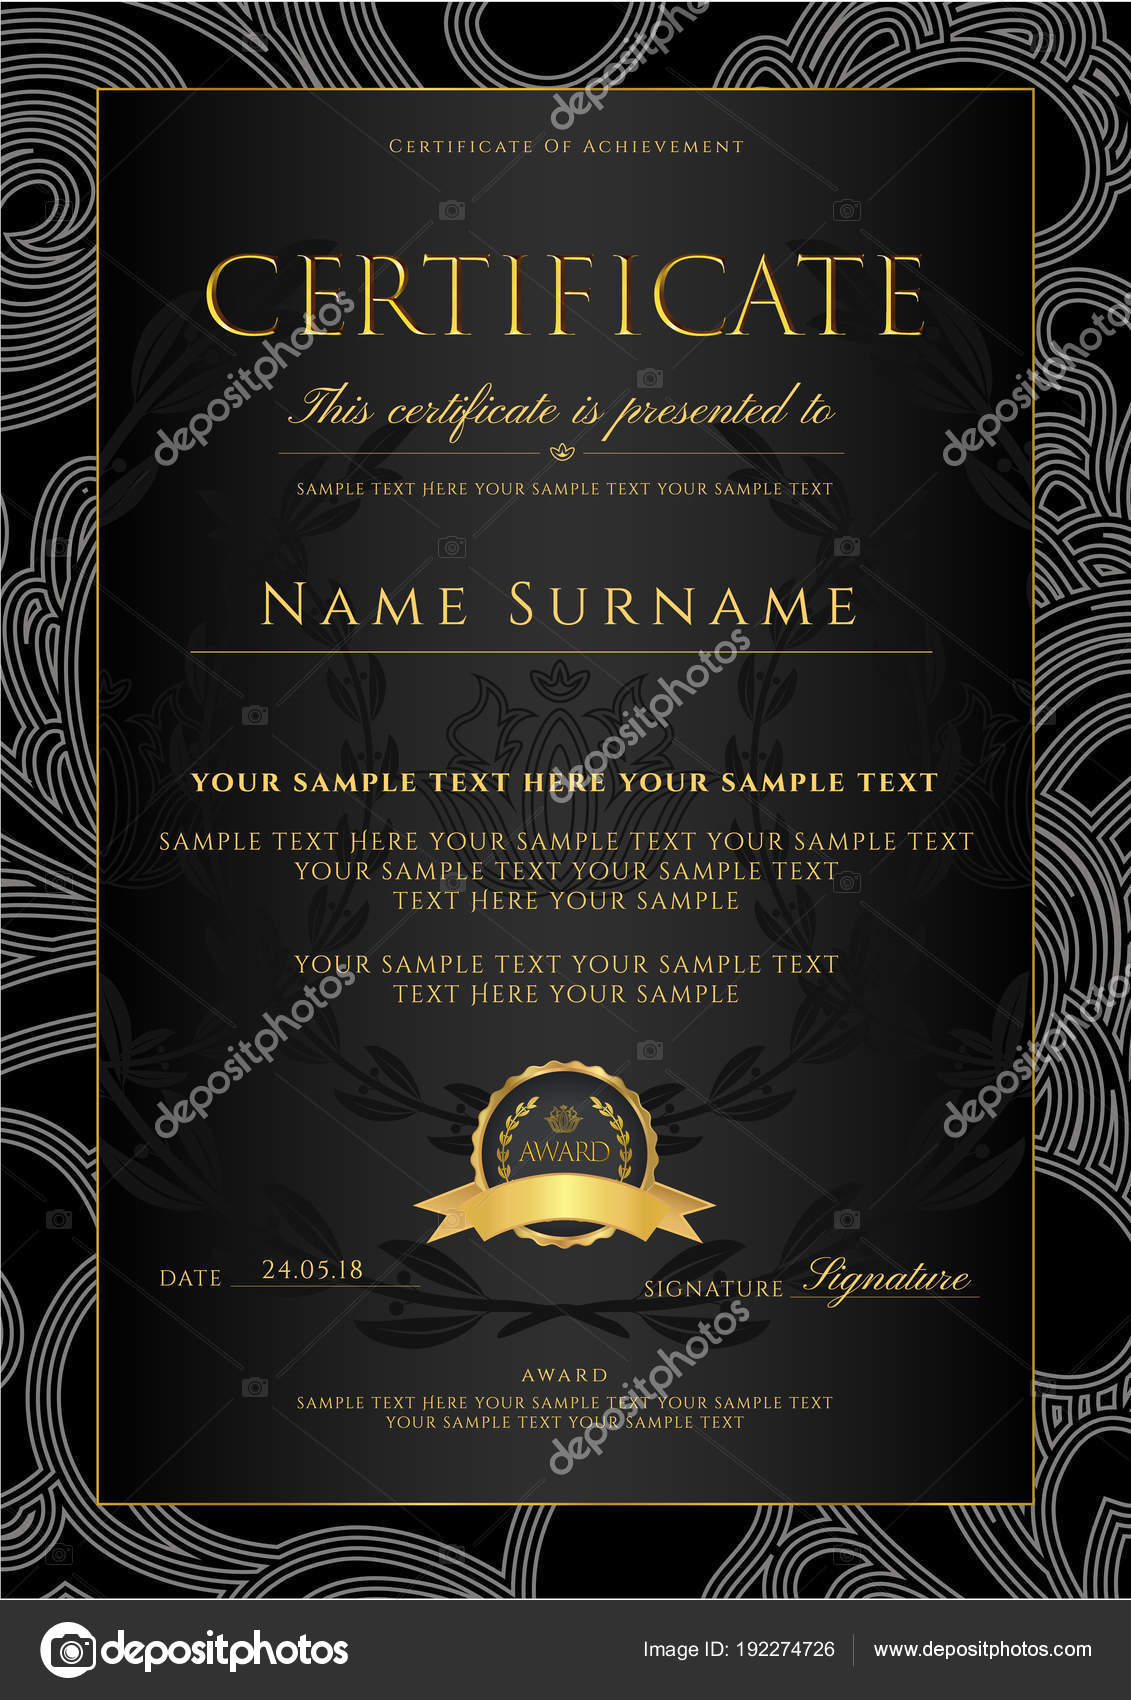 Certificate Diploma Golden Design Template Background Floral Intended For Scroll Certificate Templates